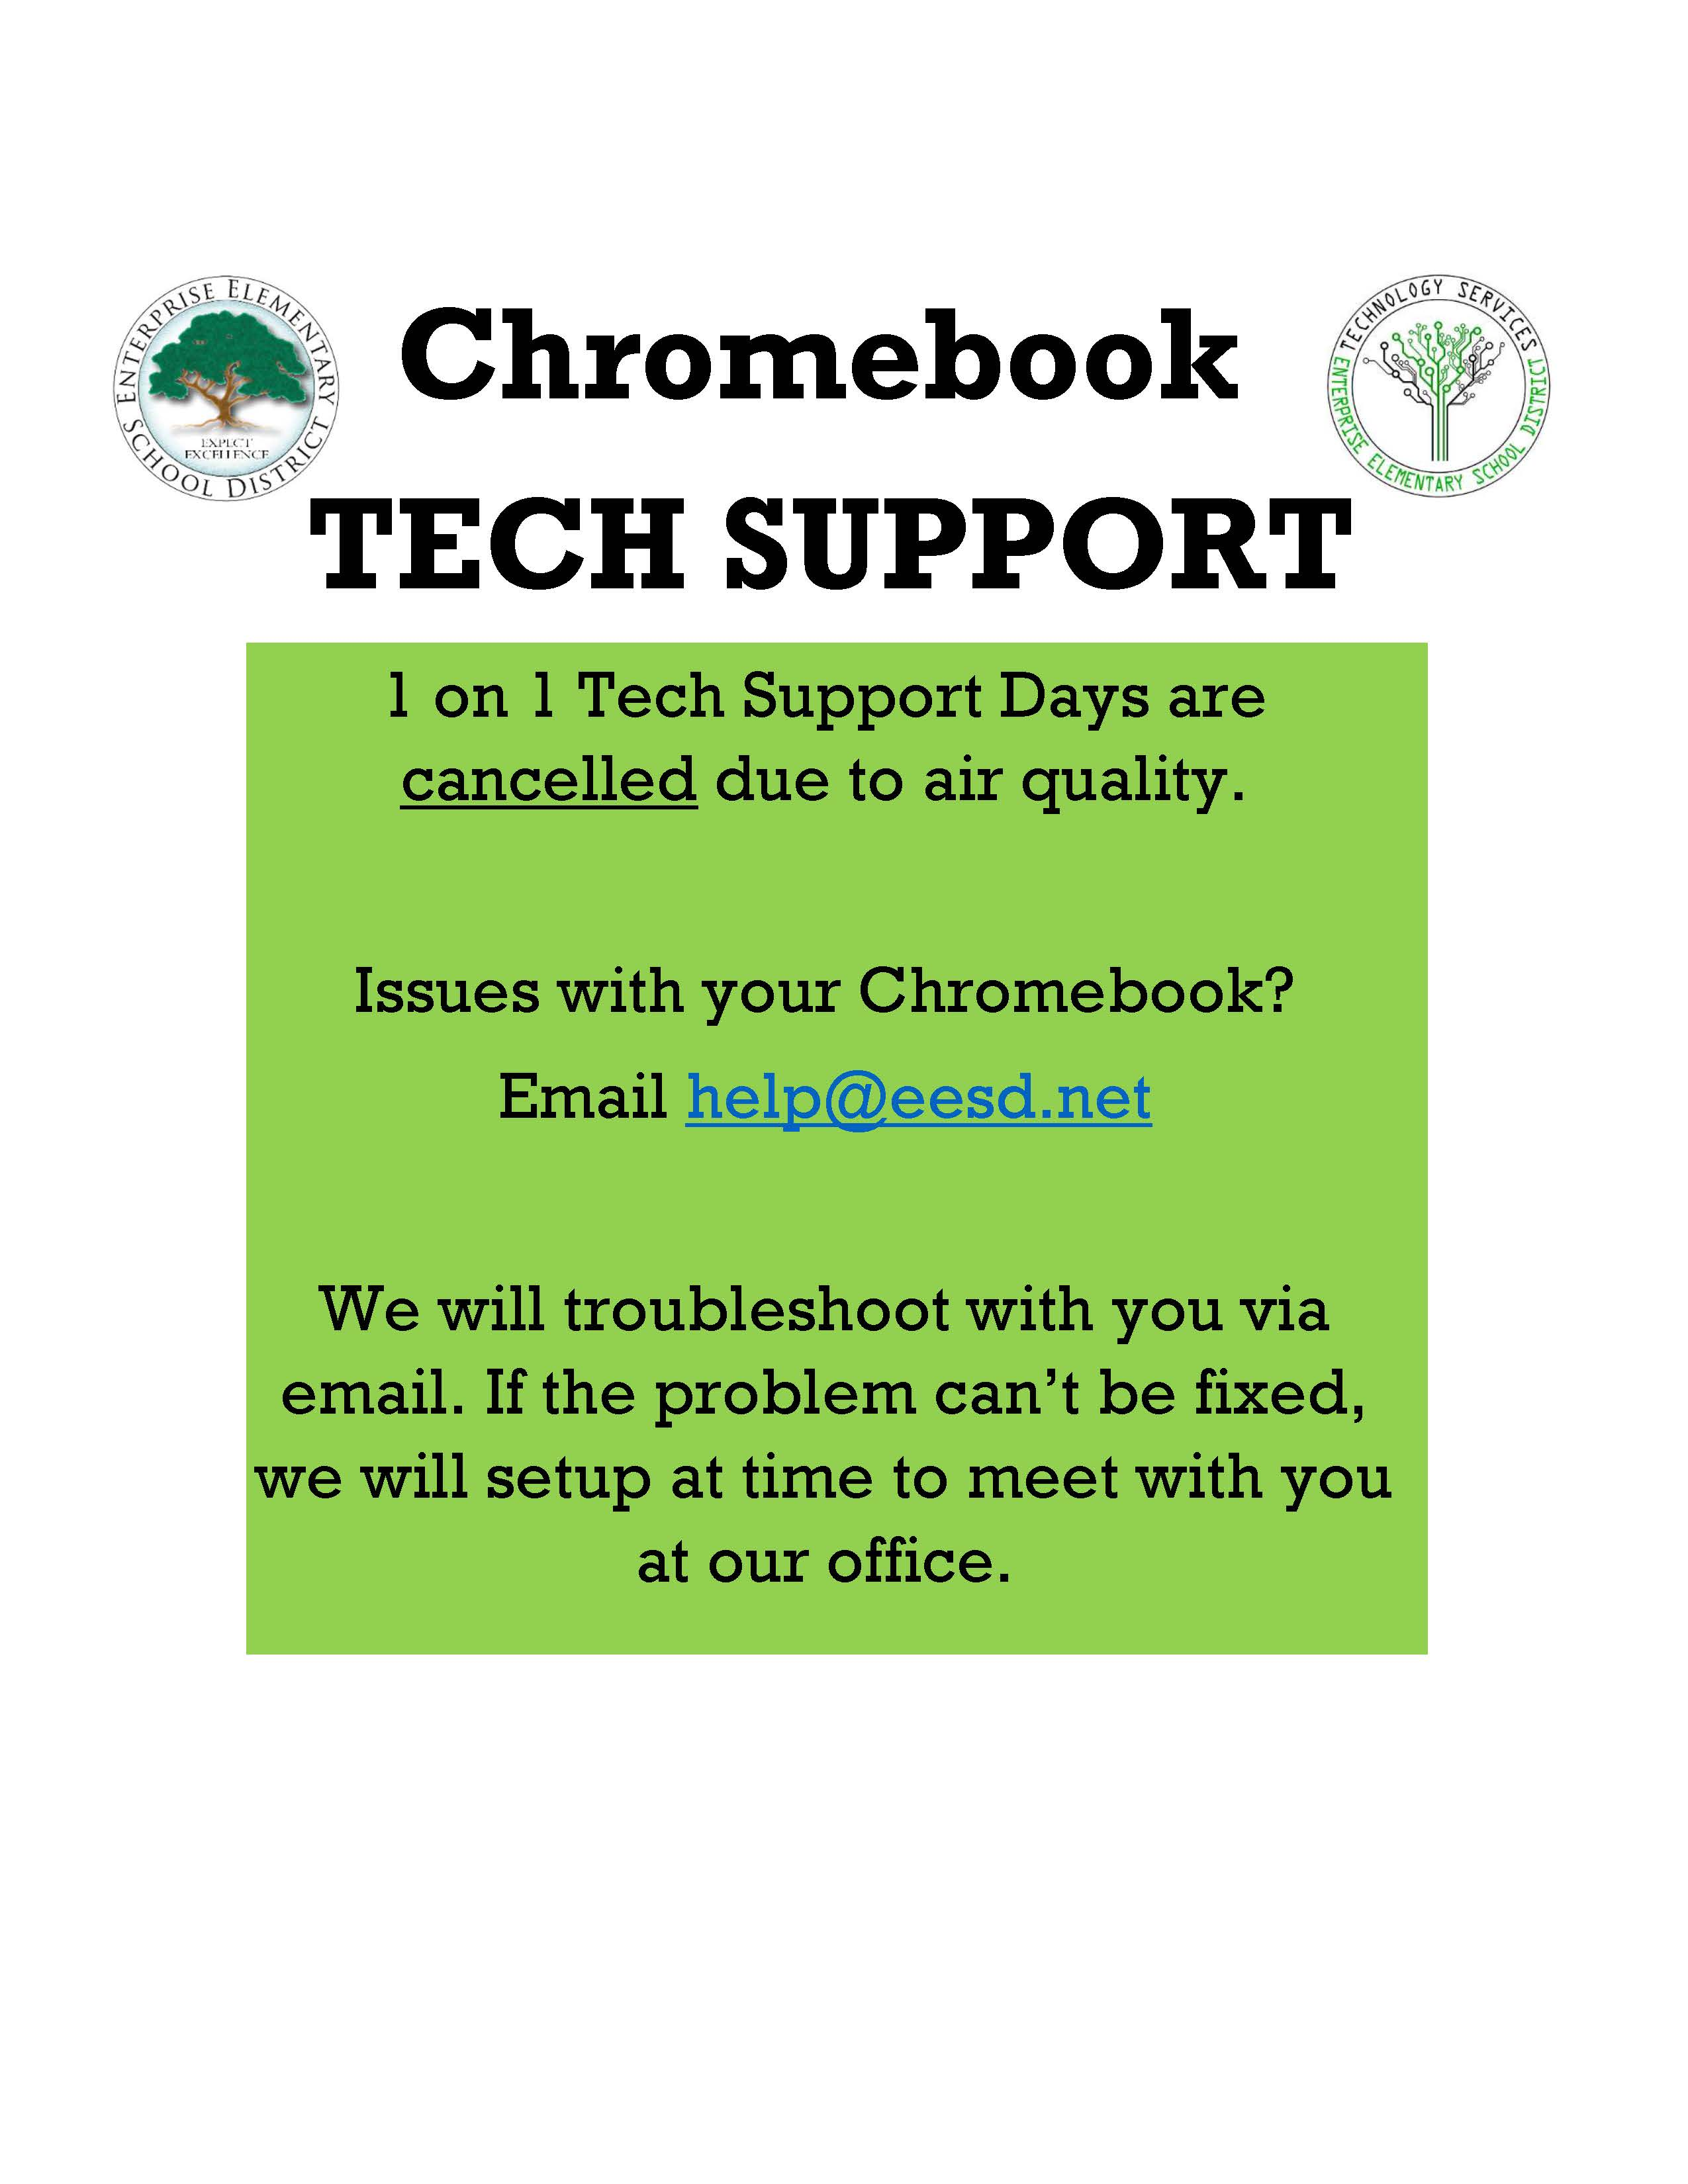 1 on 1 Tech Support Days are cancelled due to air quality.